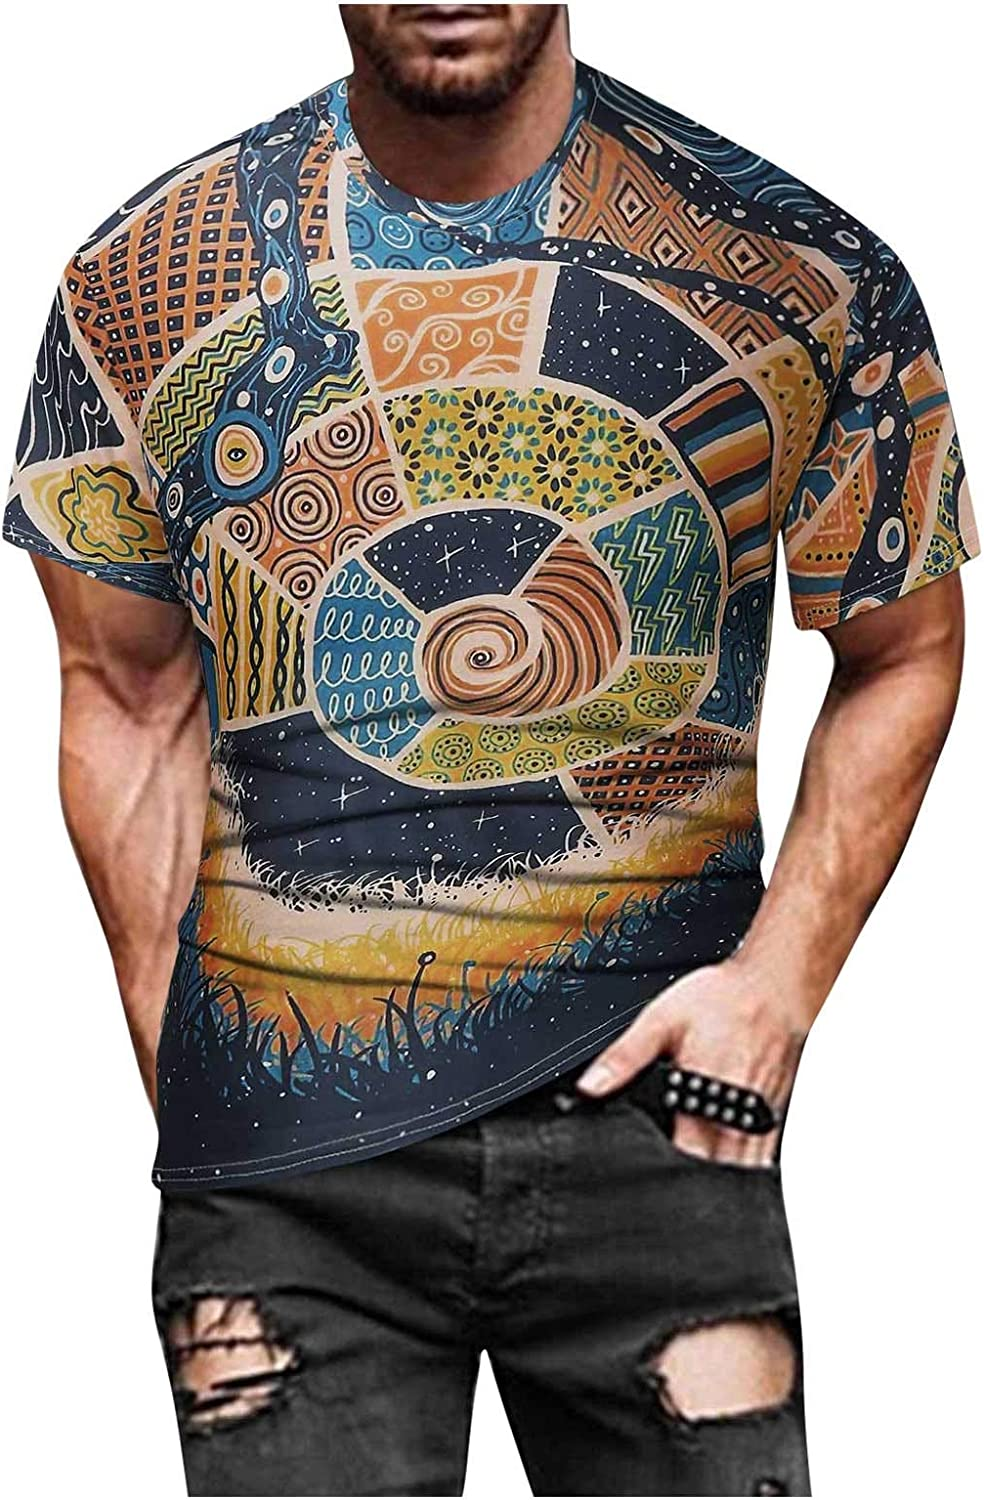 Fashion 3D Print Design t-Shirt for Men Graphic Colorful Short Sleeve Funny Street Round Neck Tops Blouse